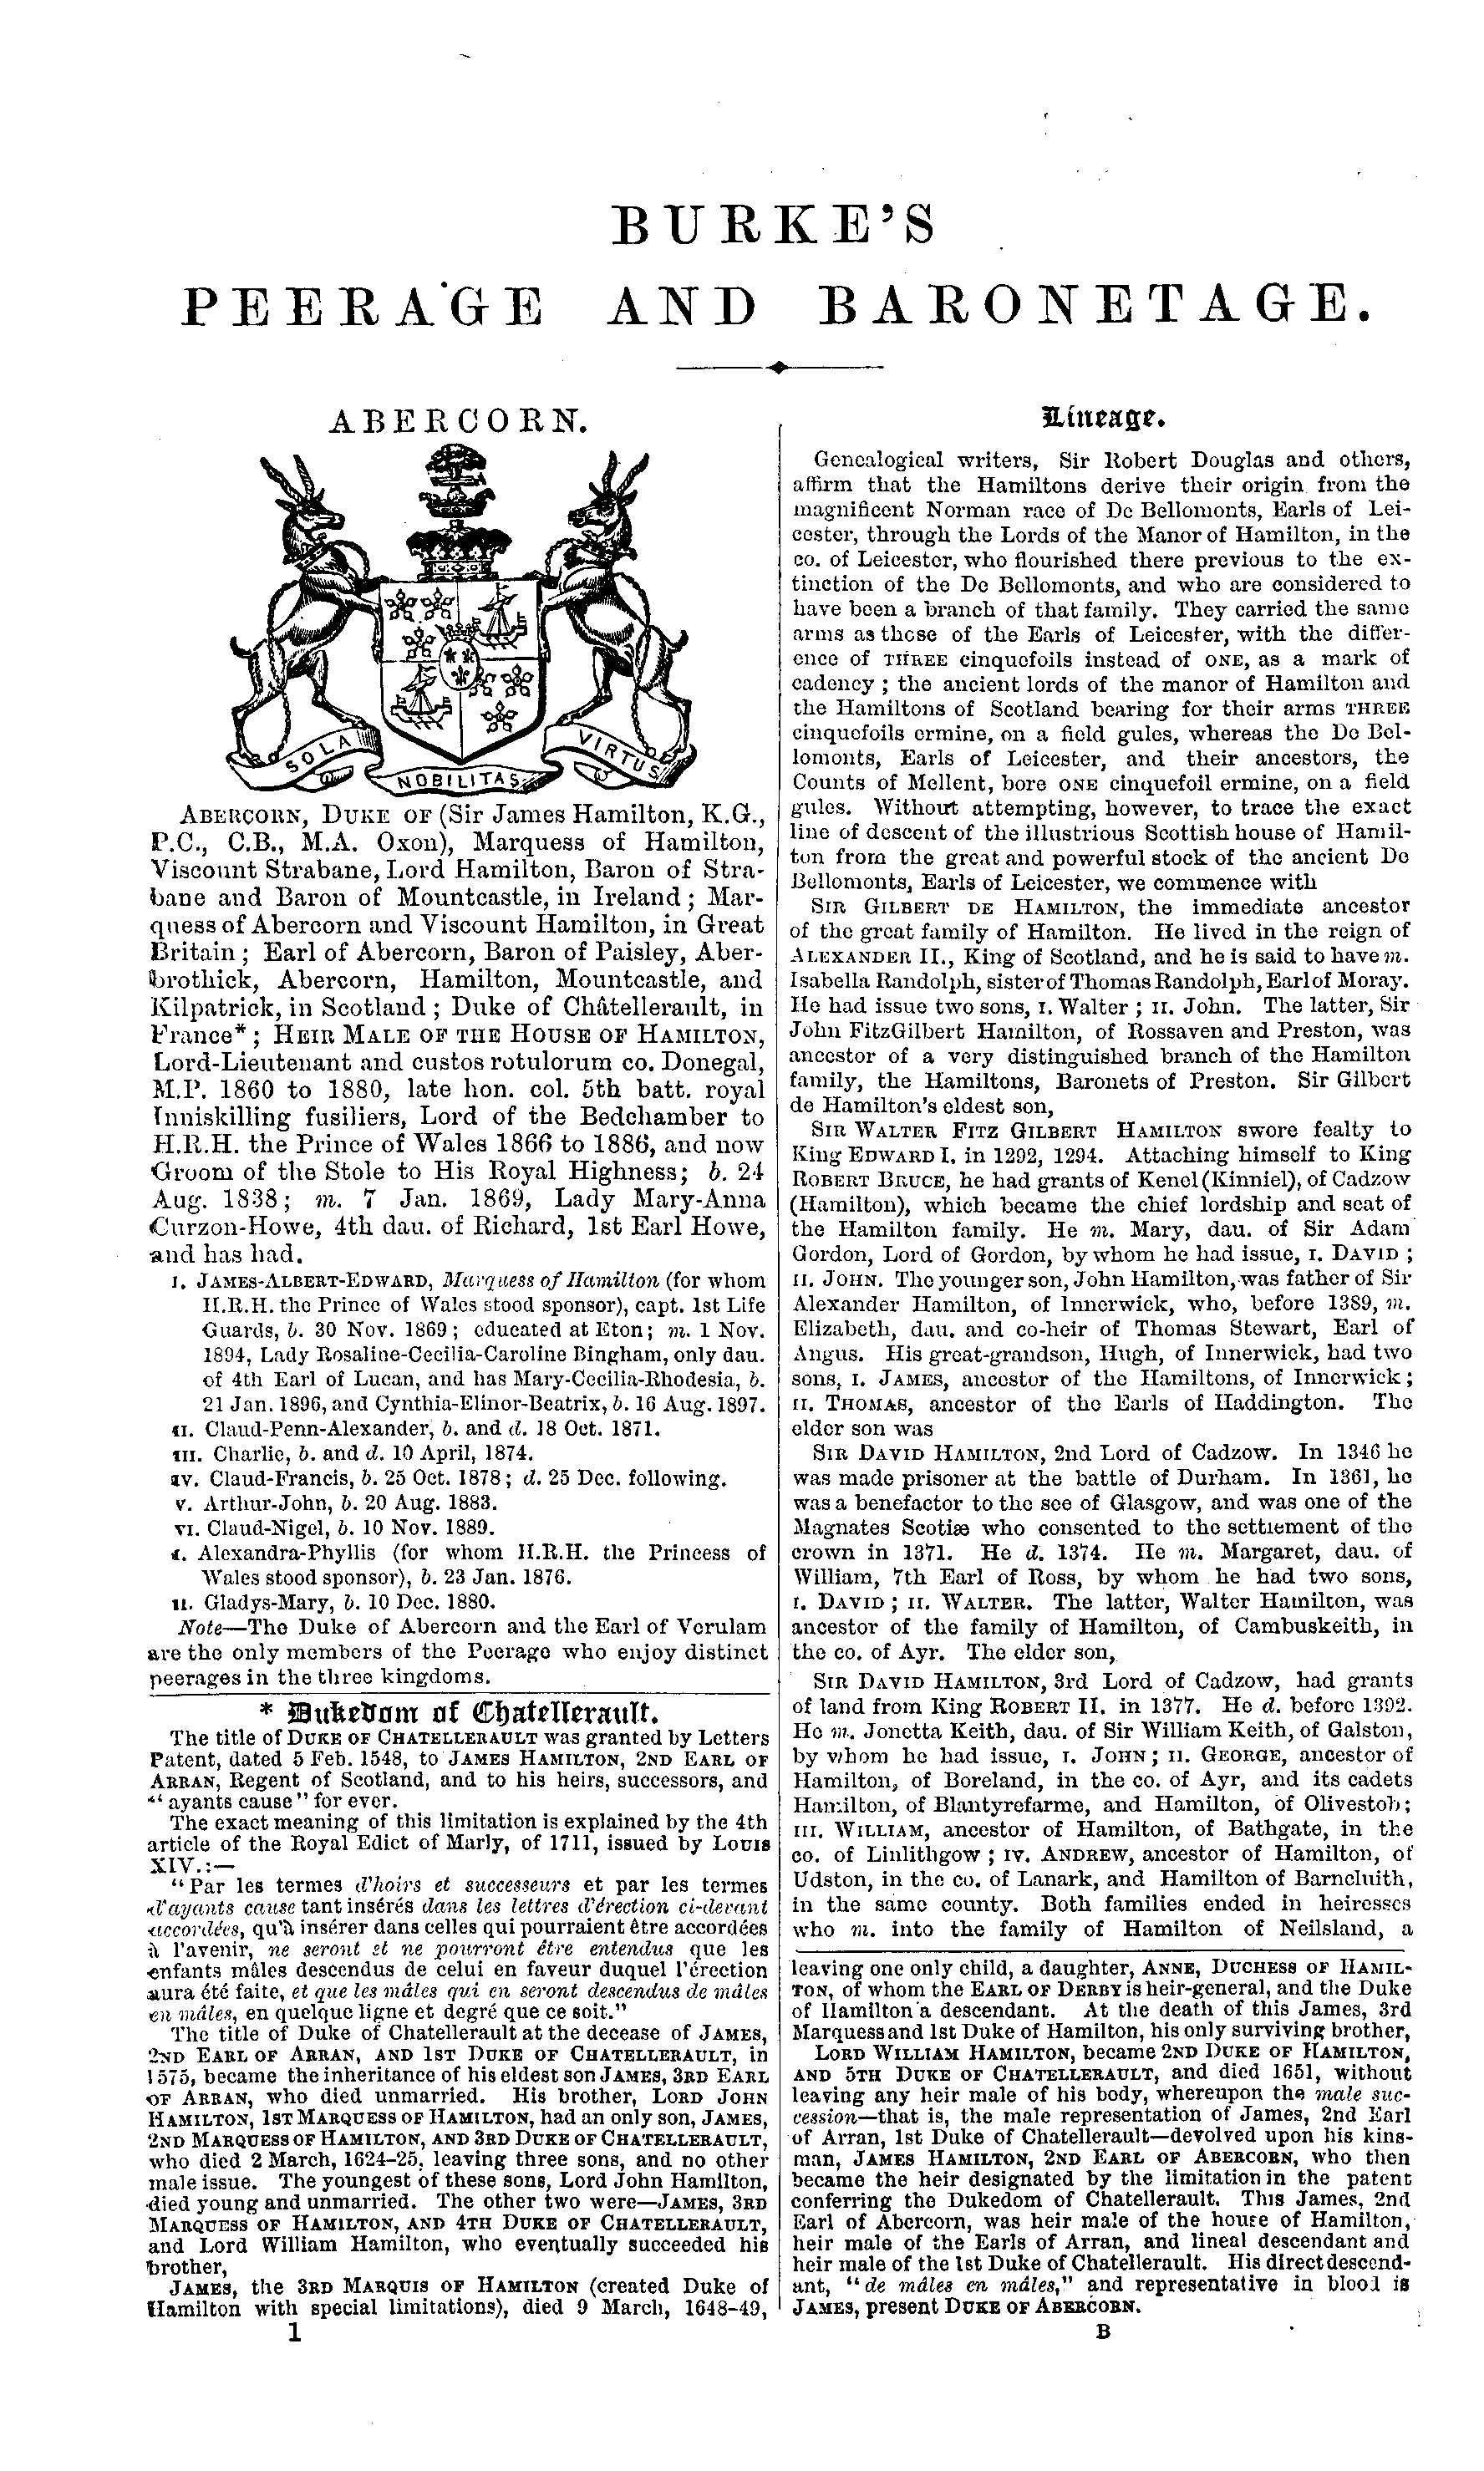 Burke's Peerage, Baronetage, and Knightage 1899 page 1 - click to open larger version in a new window